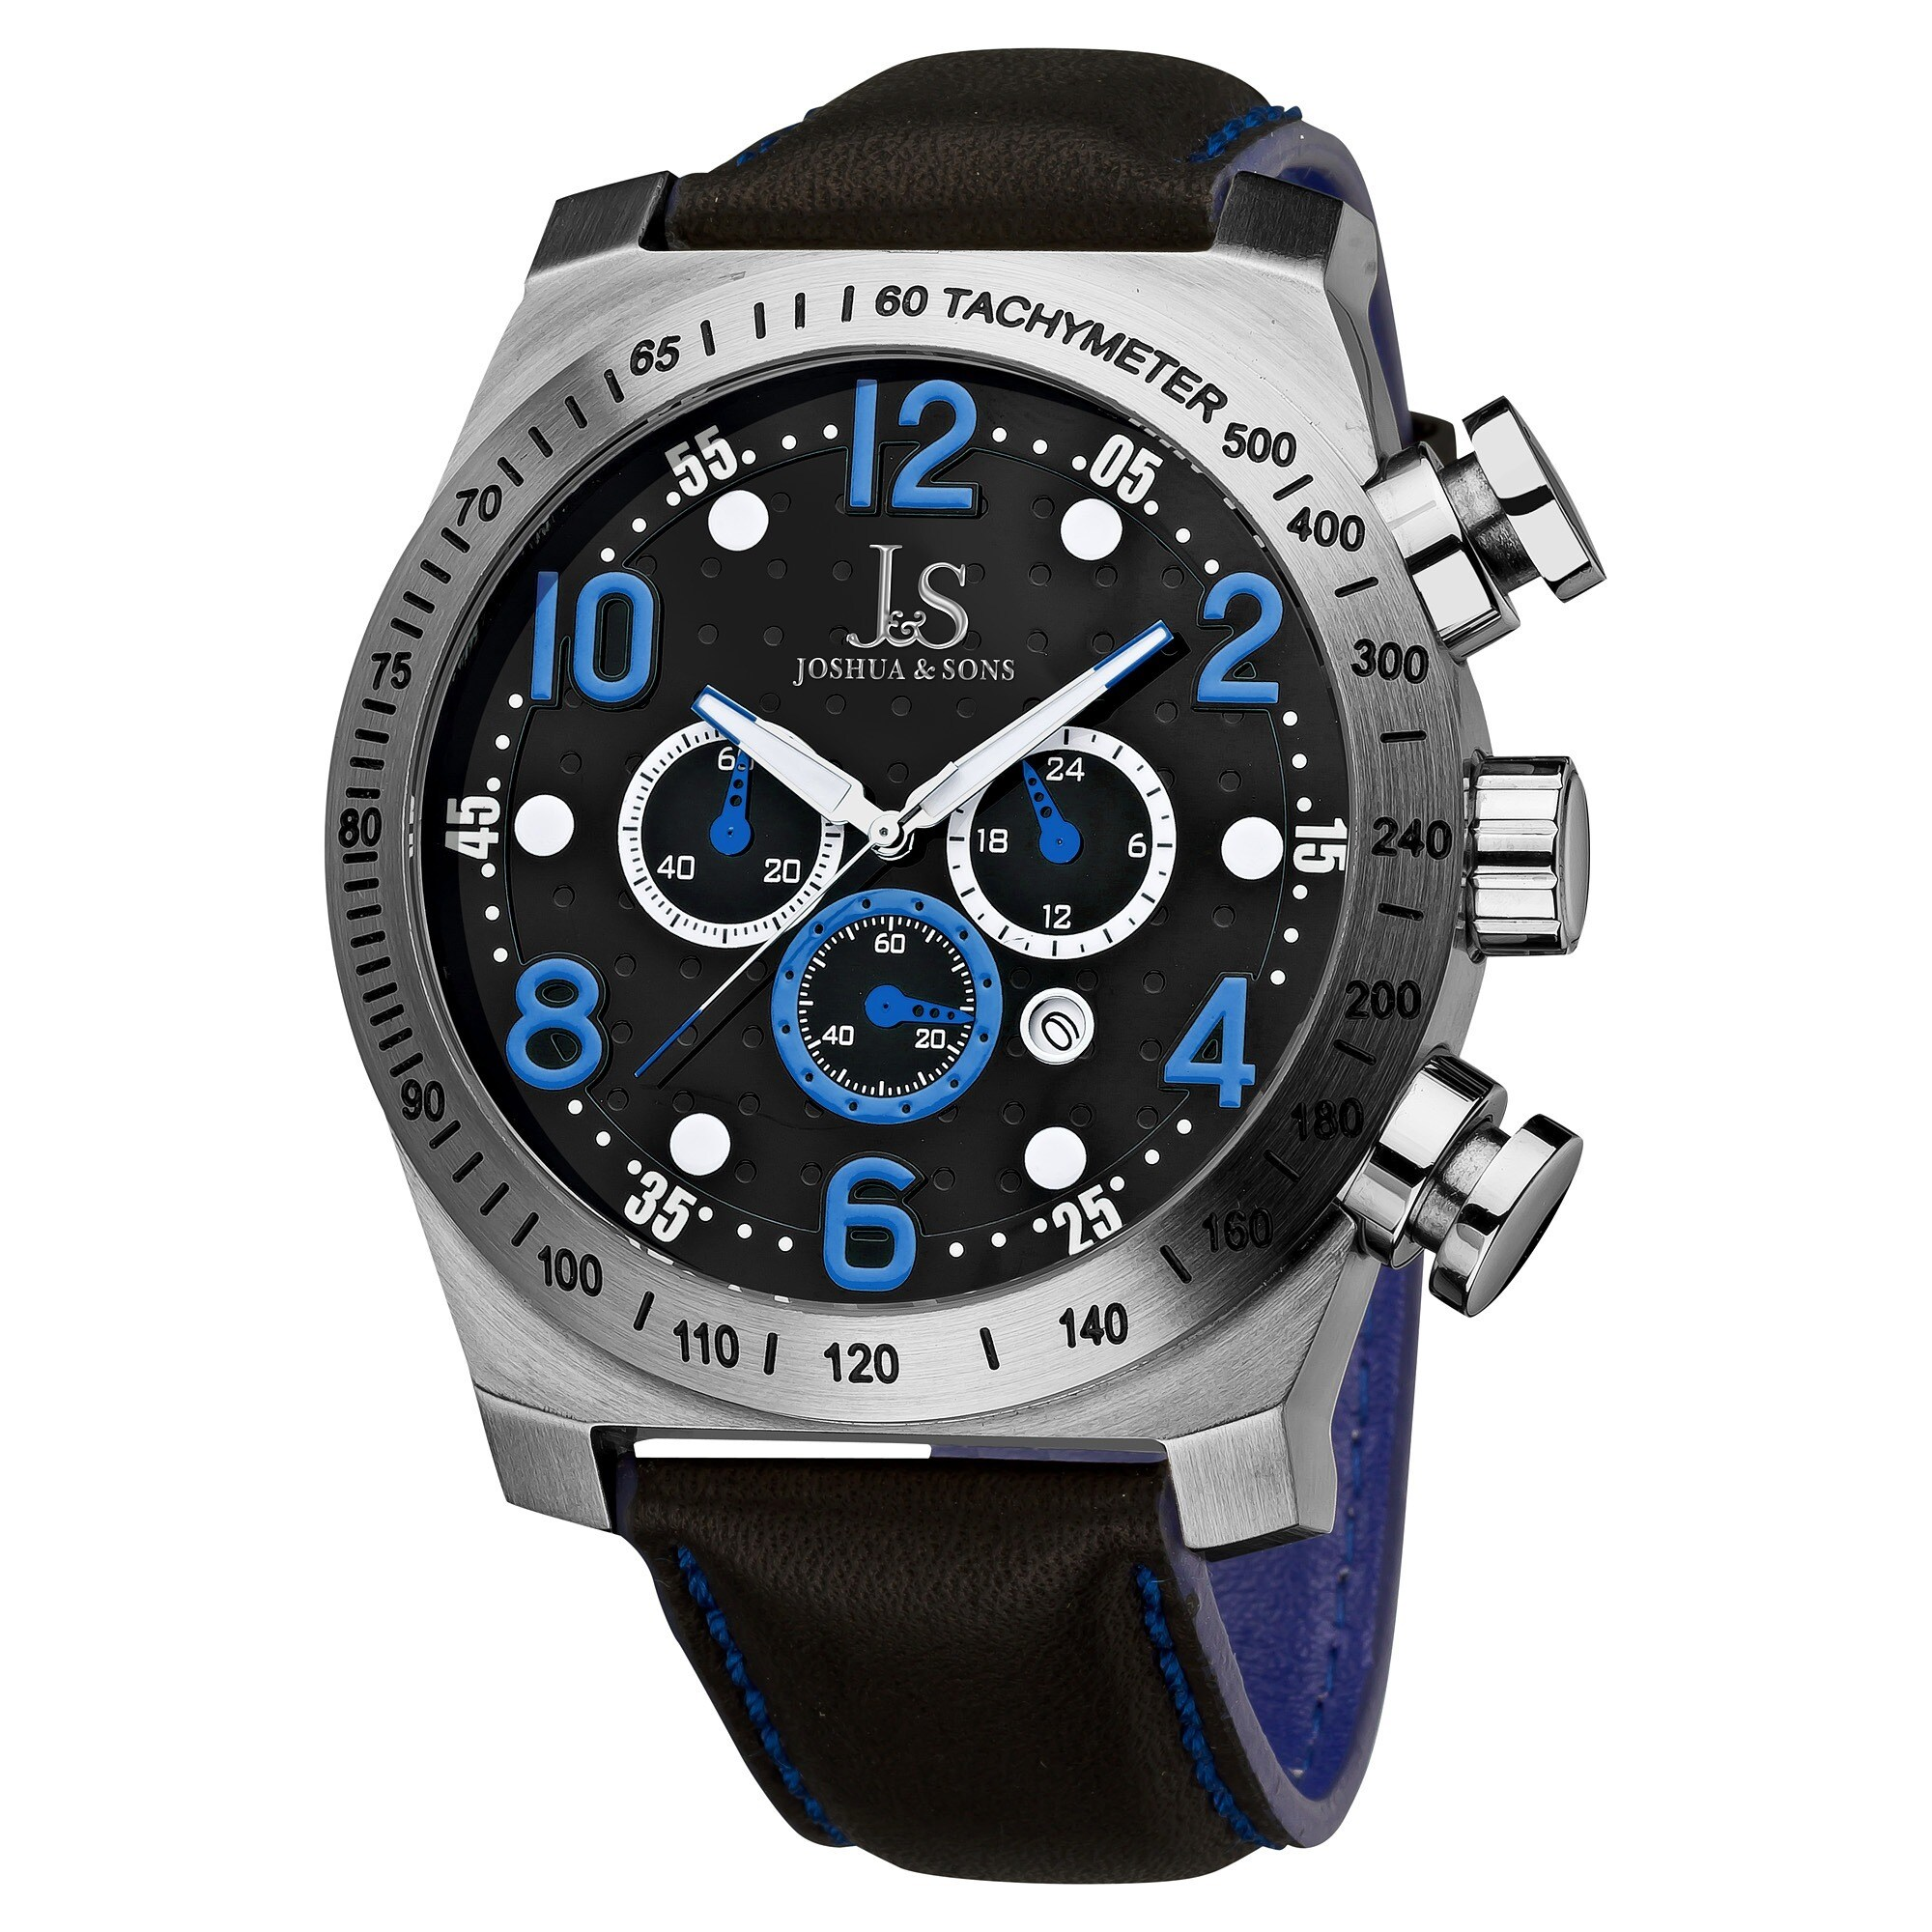 chronograph reviews watches chrono beacon mens watch past gents barbour